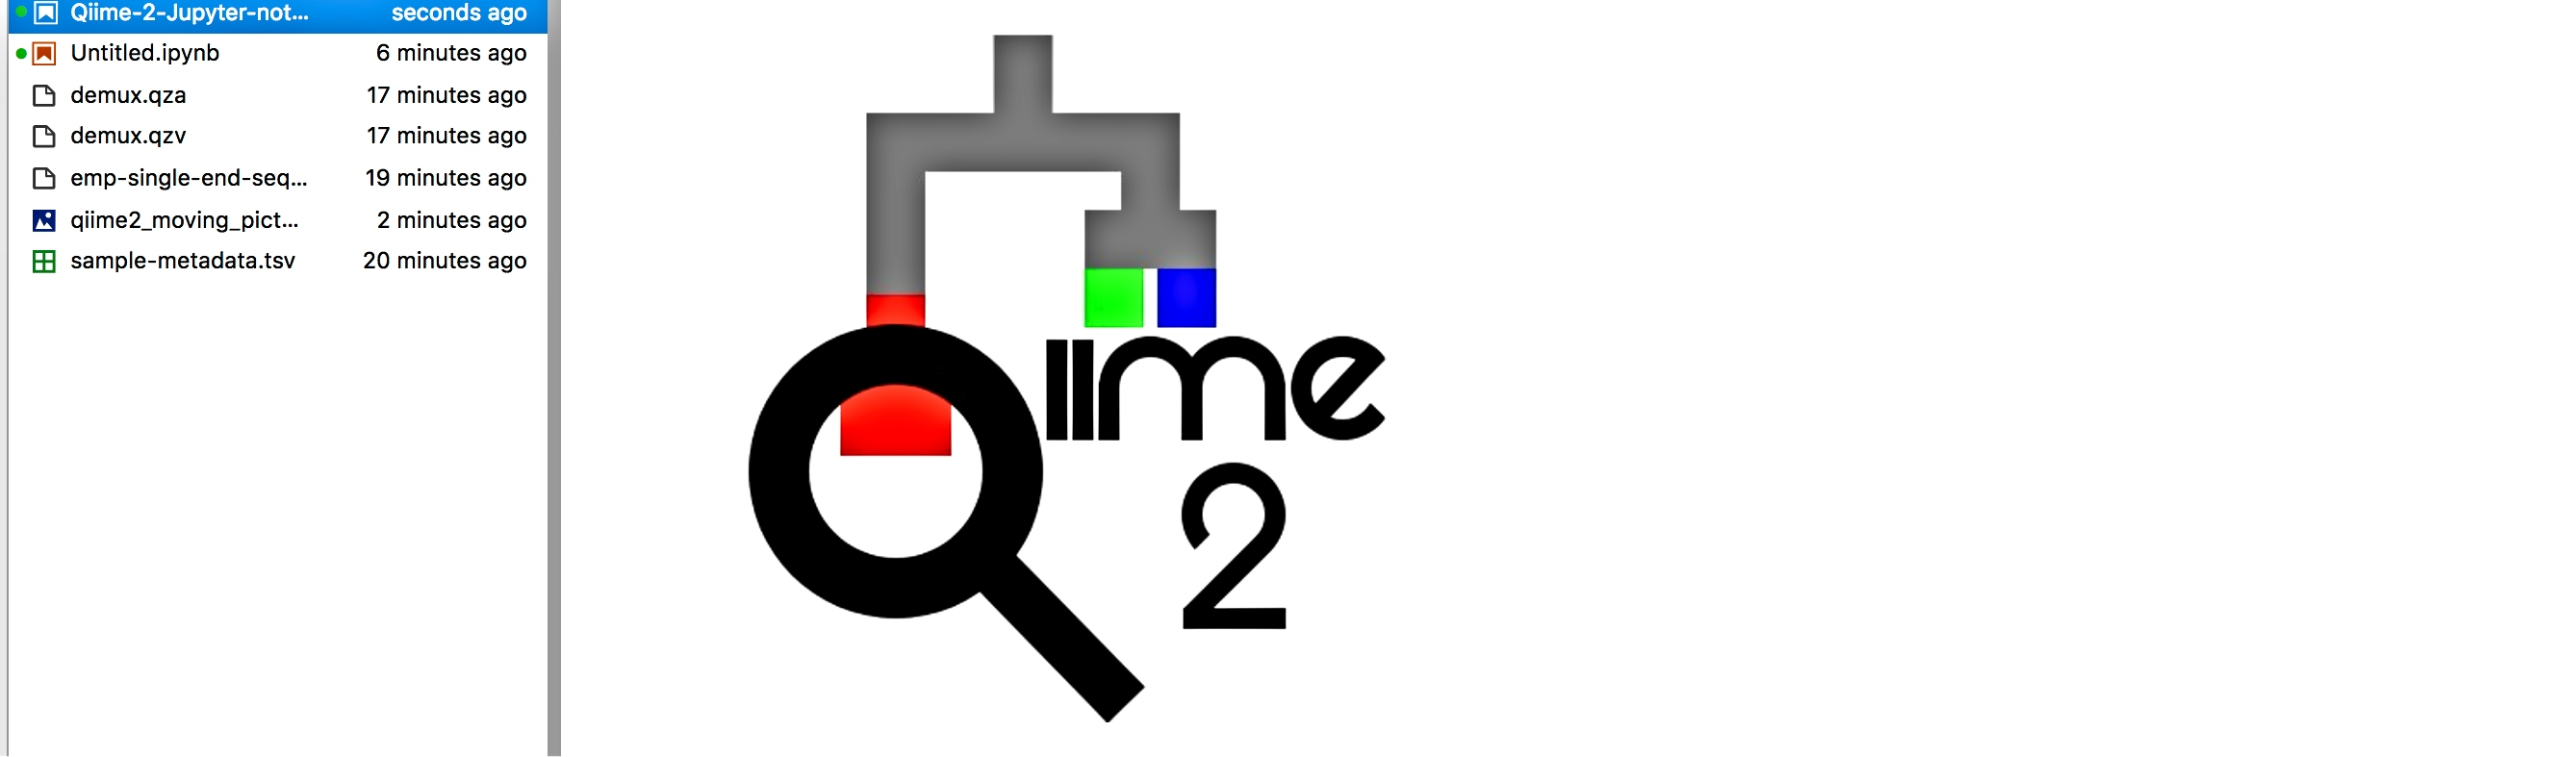 How to use qiime 2